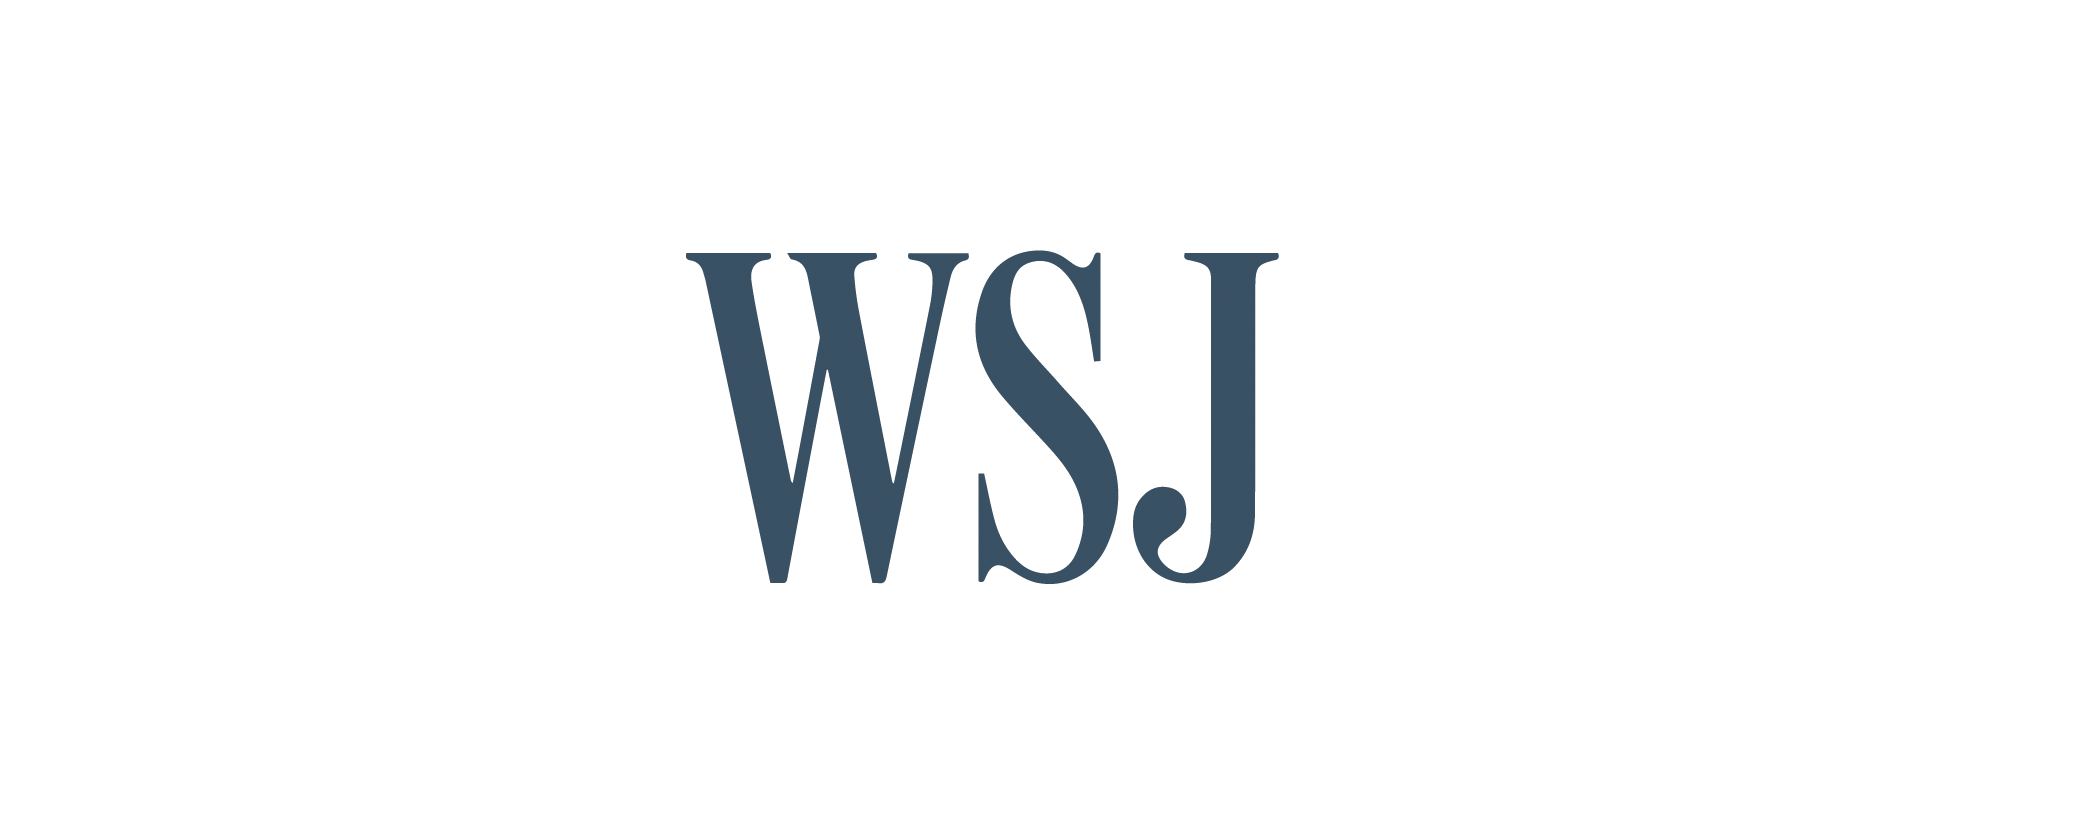 The Well WSJ